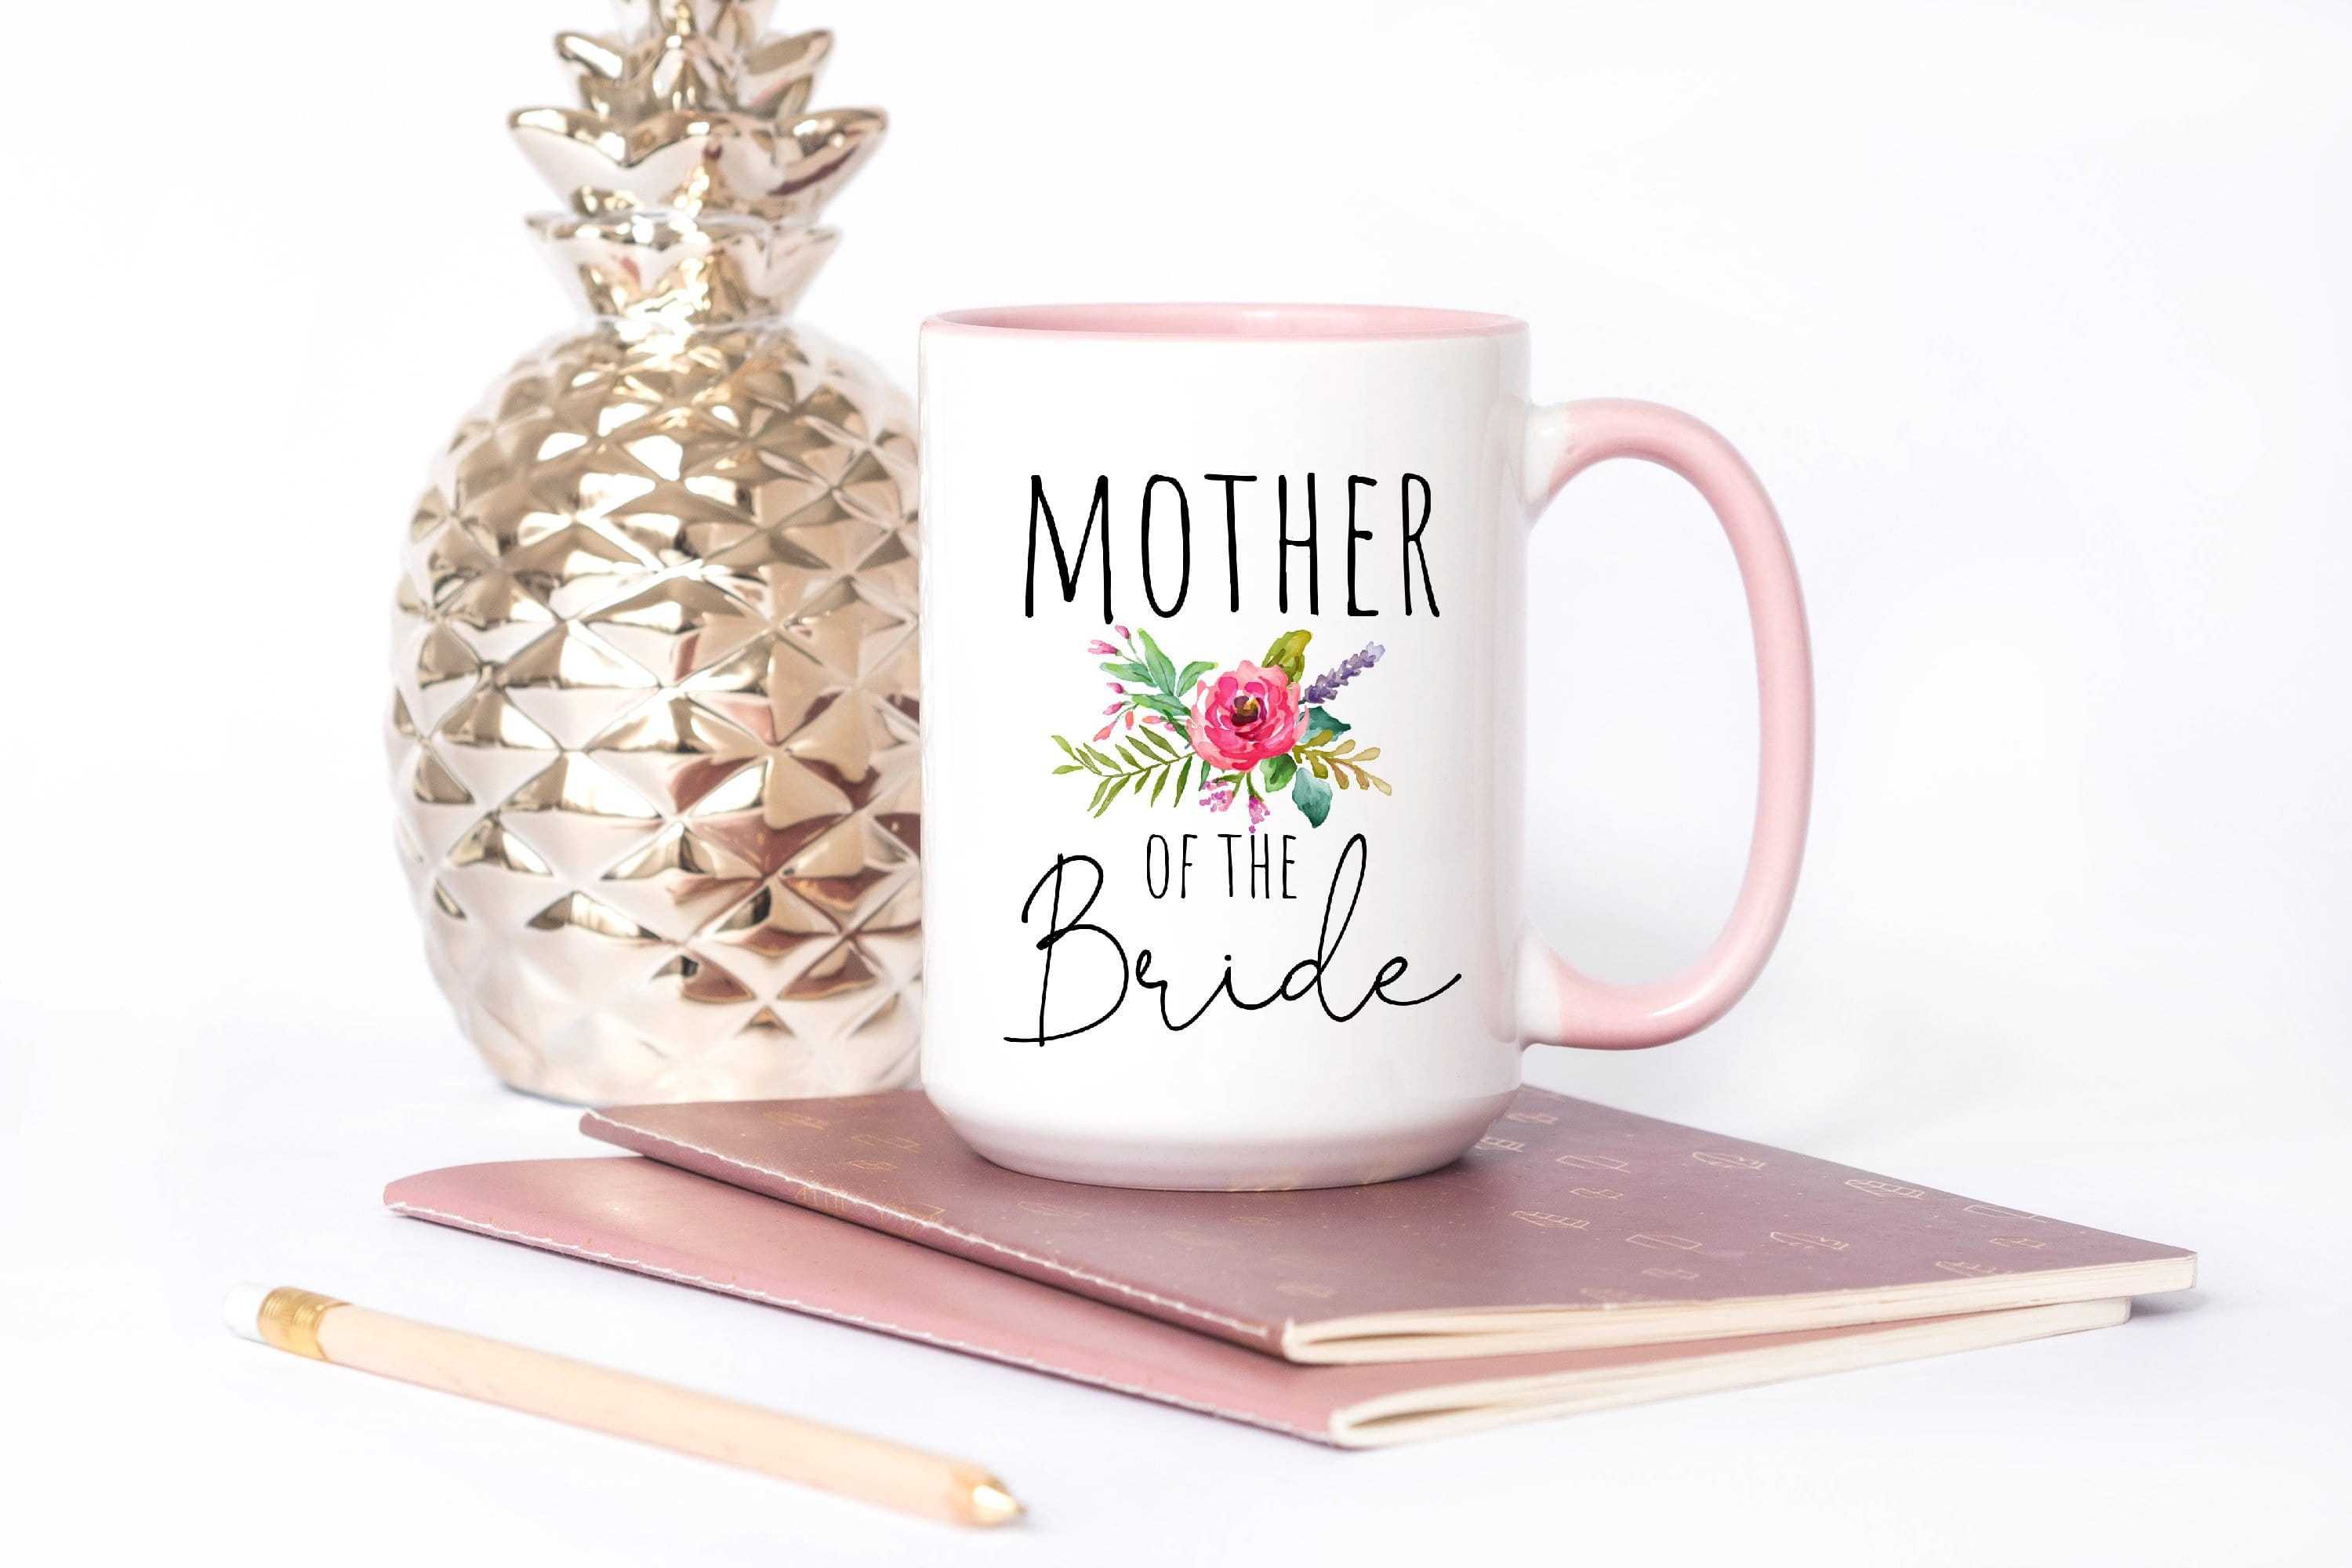 Mother of the Bride Gift Idea